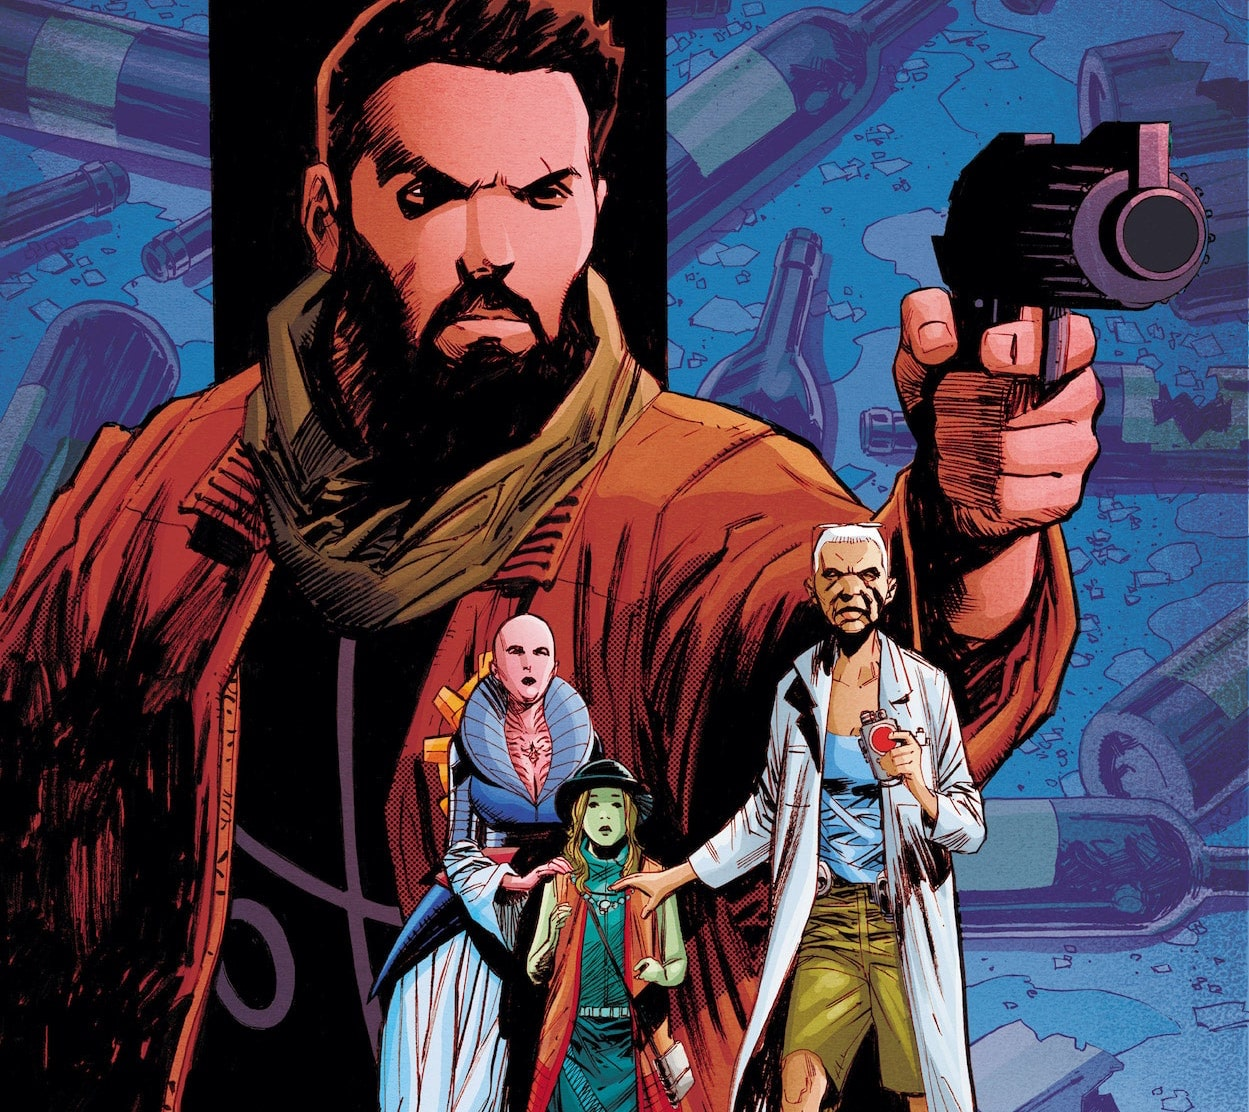 EXCLUSIVE ComiXology Preview: Edgeworld #4